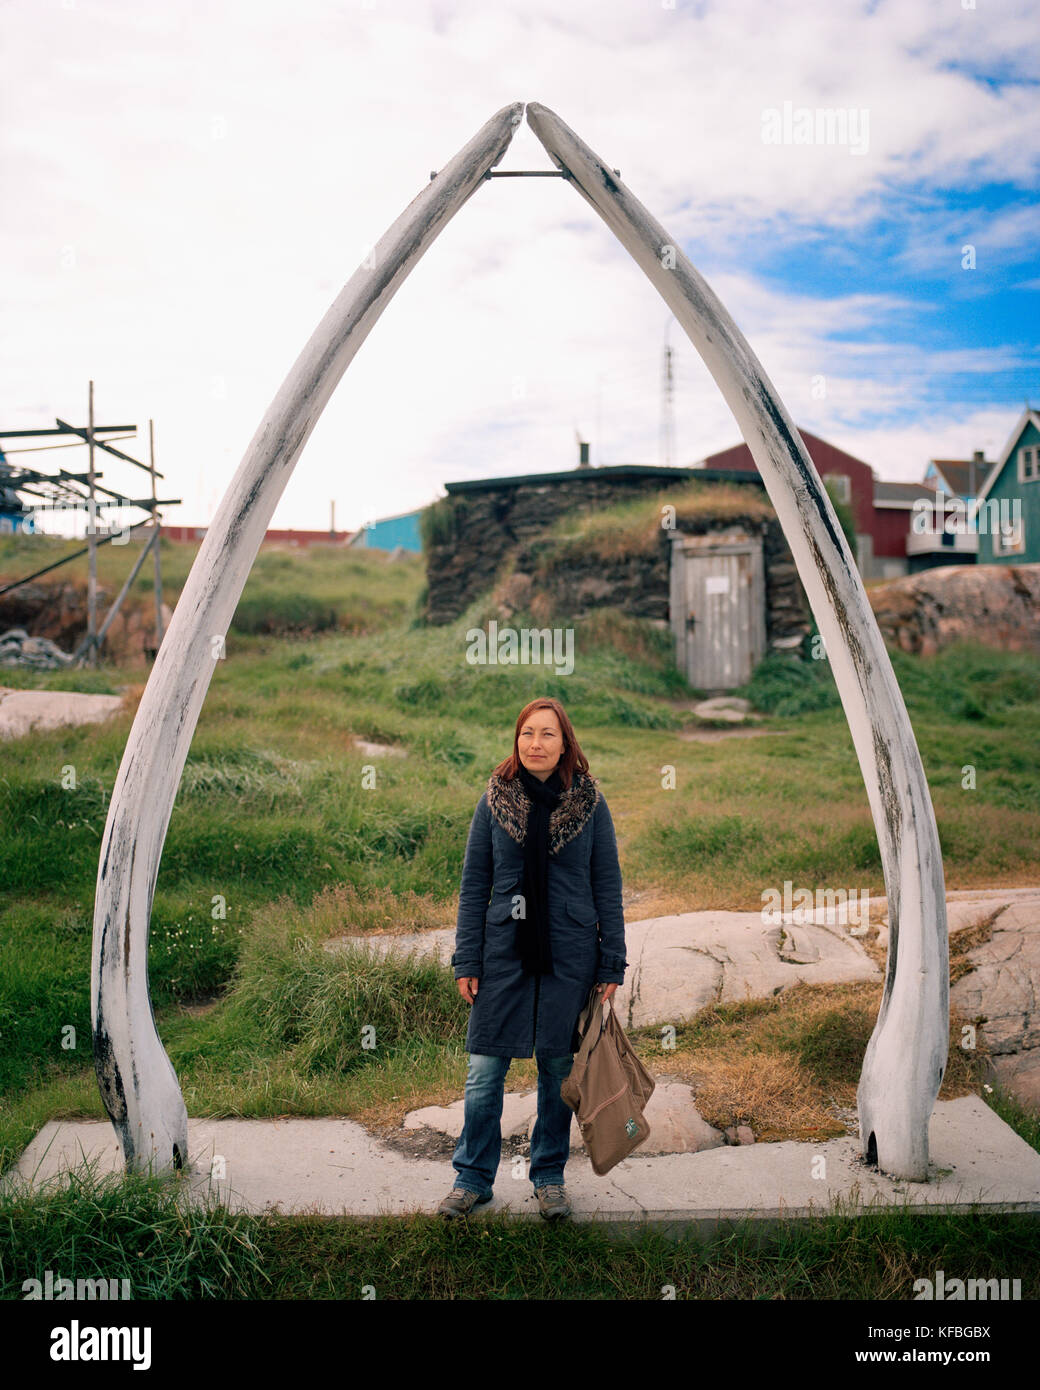 GREENLAND, Ilulissat, Knud Rasmussen Museum, portrait of young local with whale tusks - Stock Image